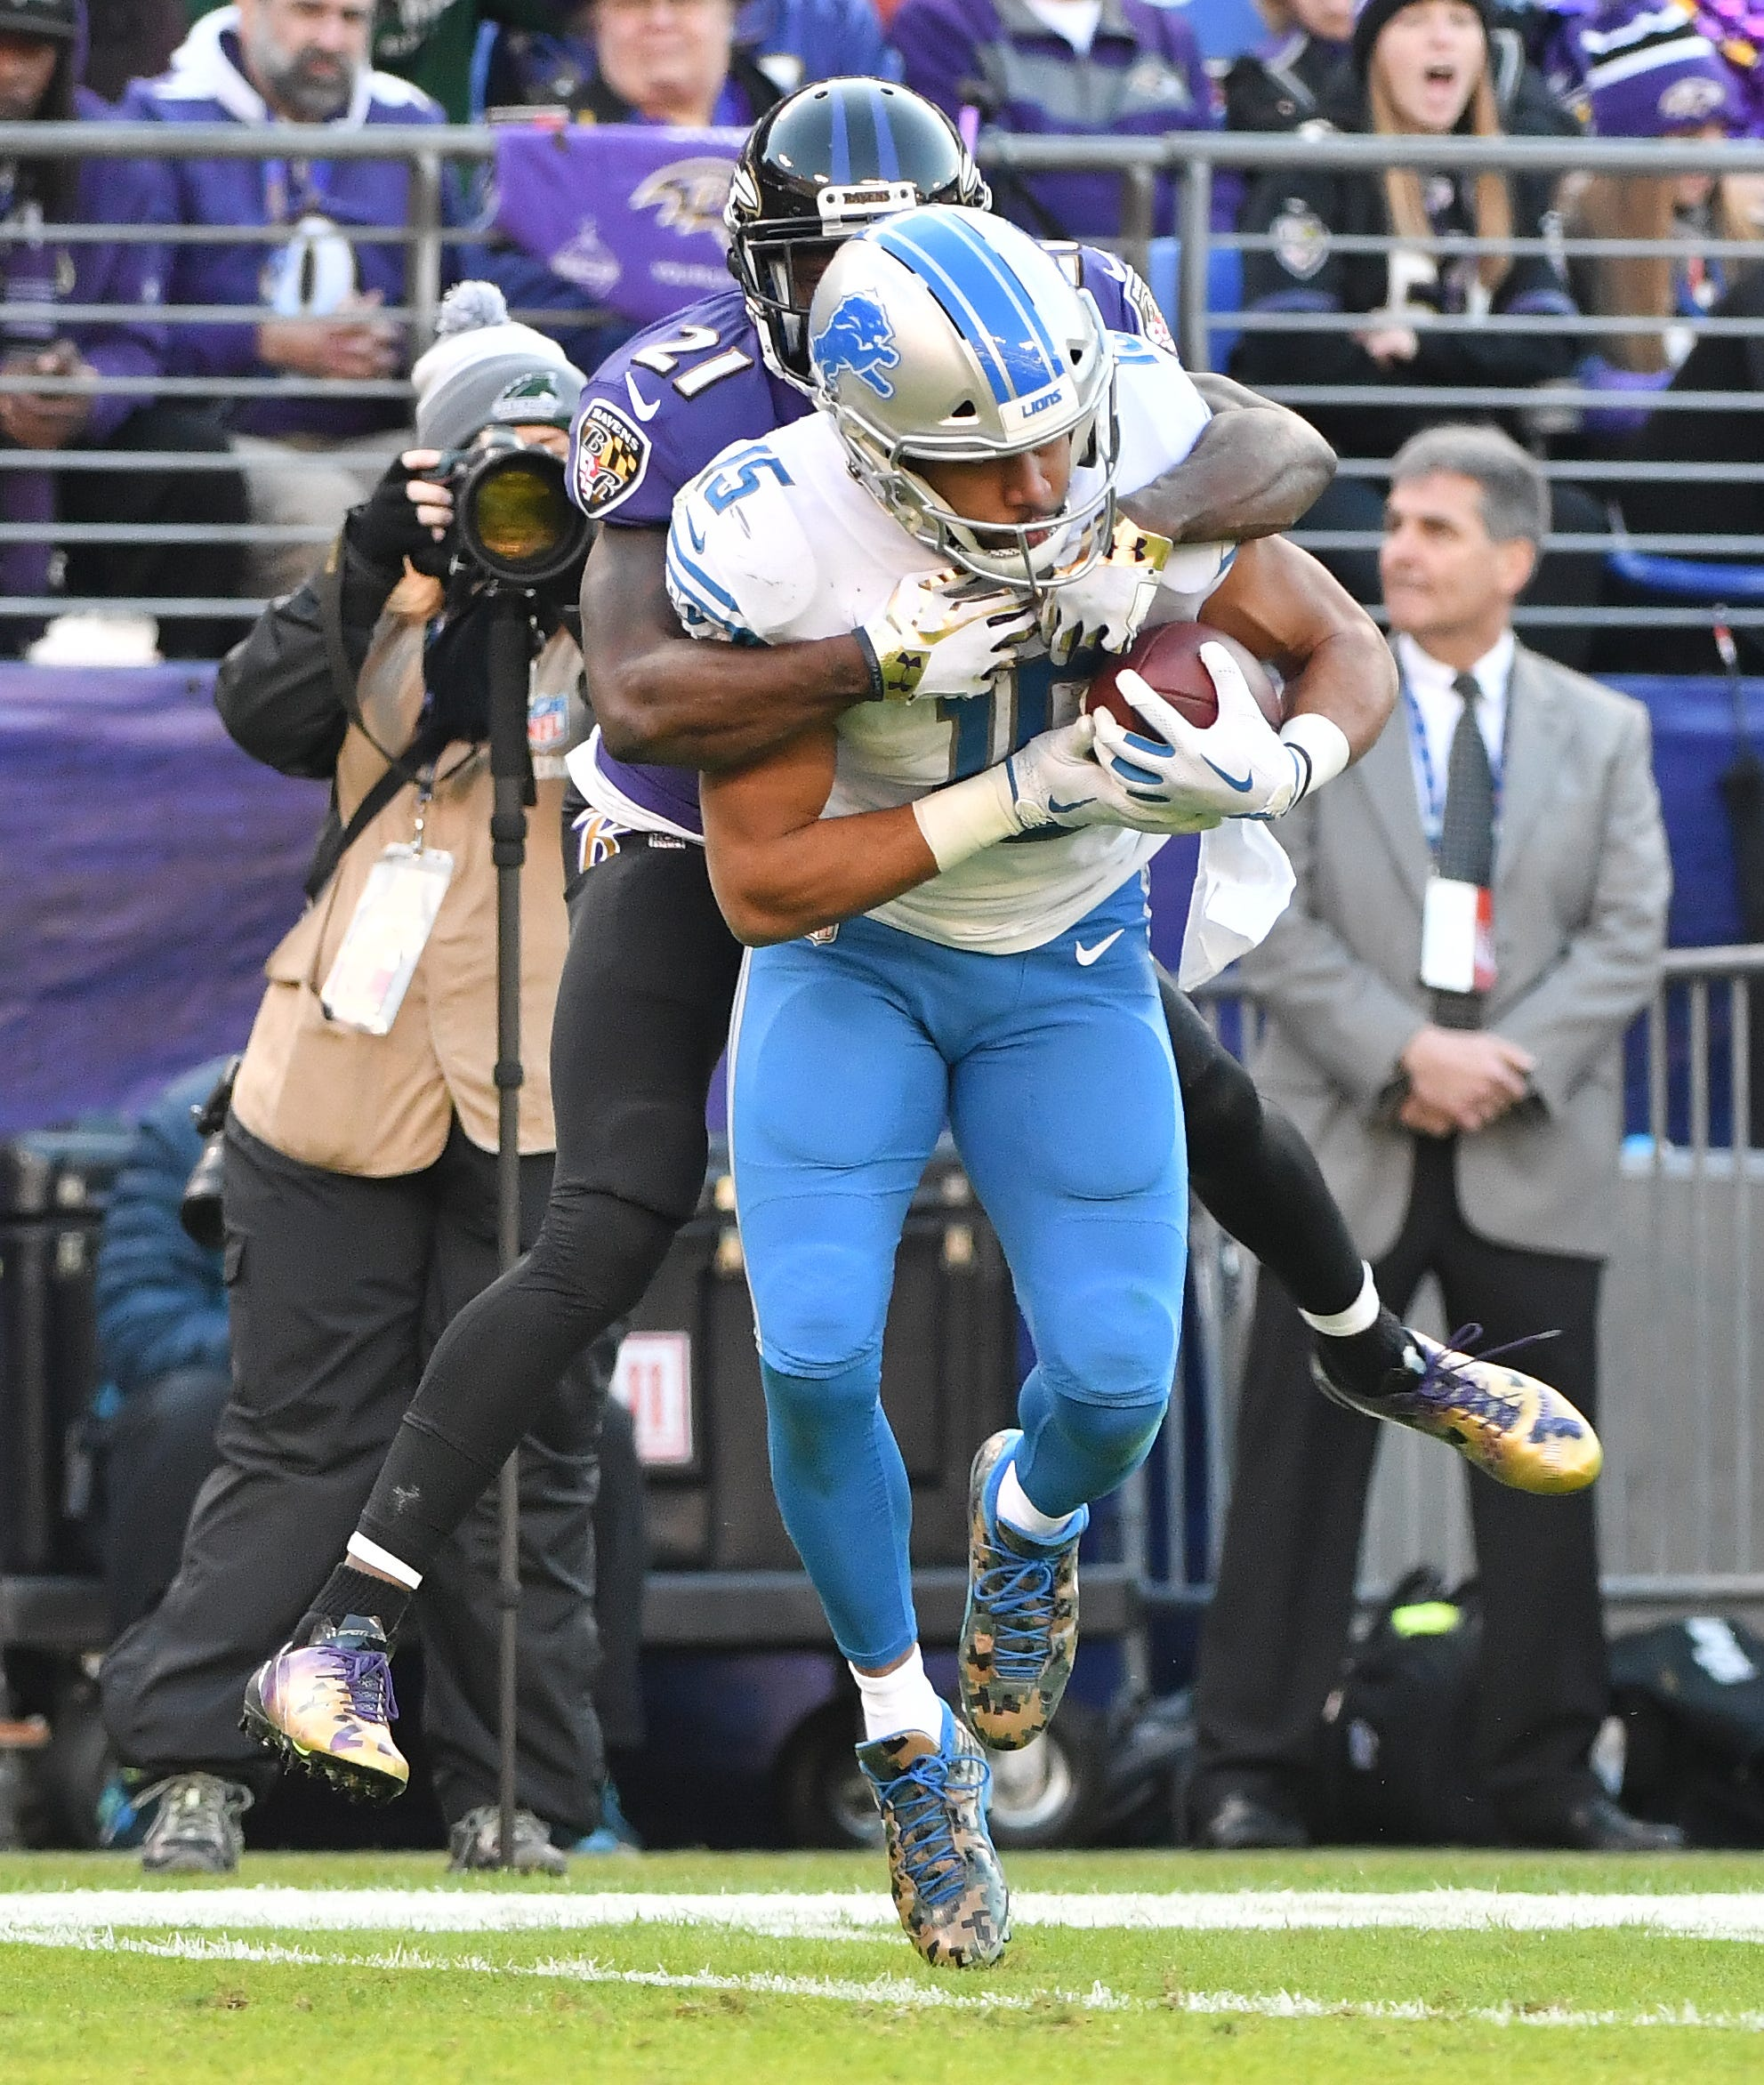 Lions wide receiver Golden Tate gives Ravens' Lardarius